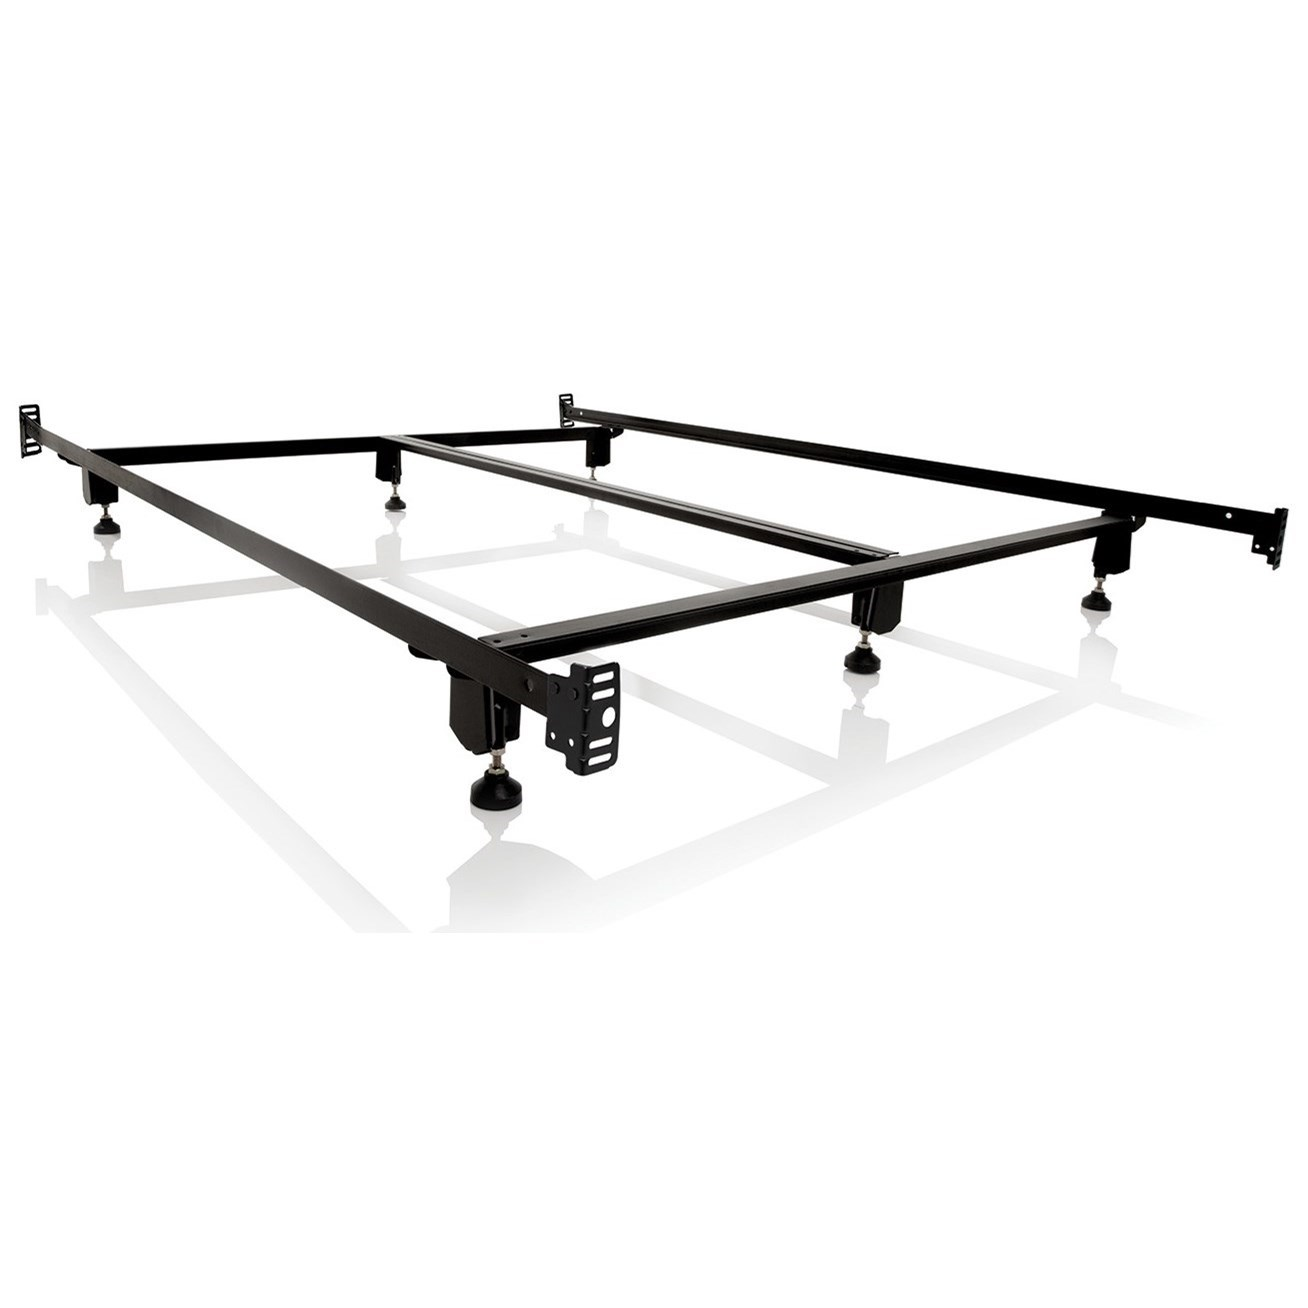 Steelock Twin Steelock Bolt-On Bed Frame by Malouf at Rife's Home Furniture